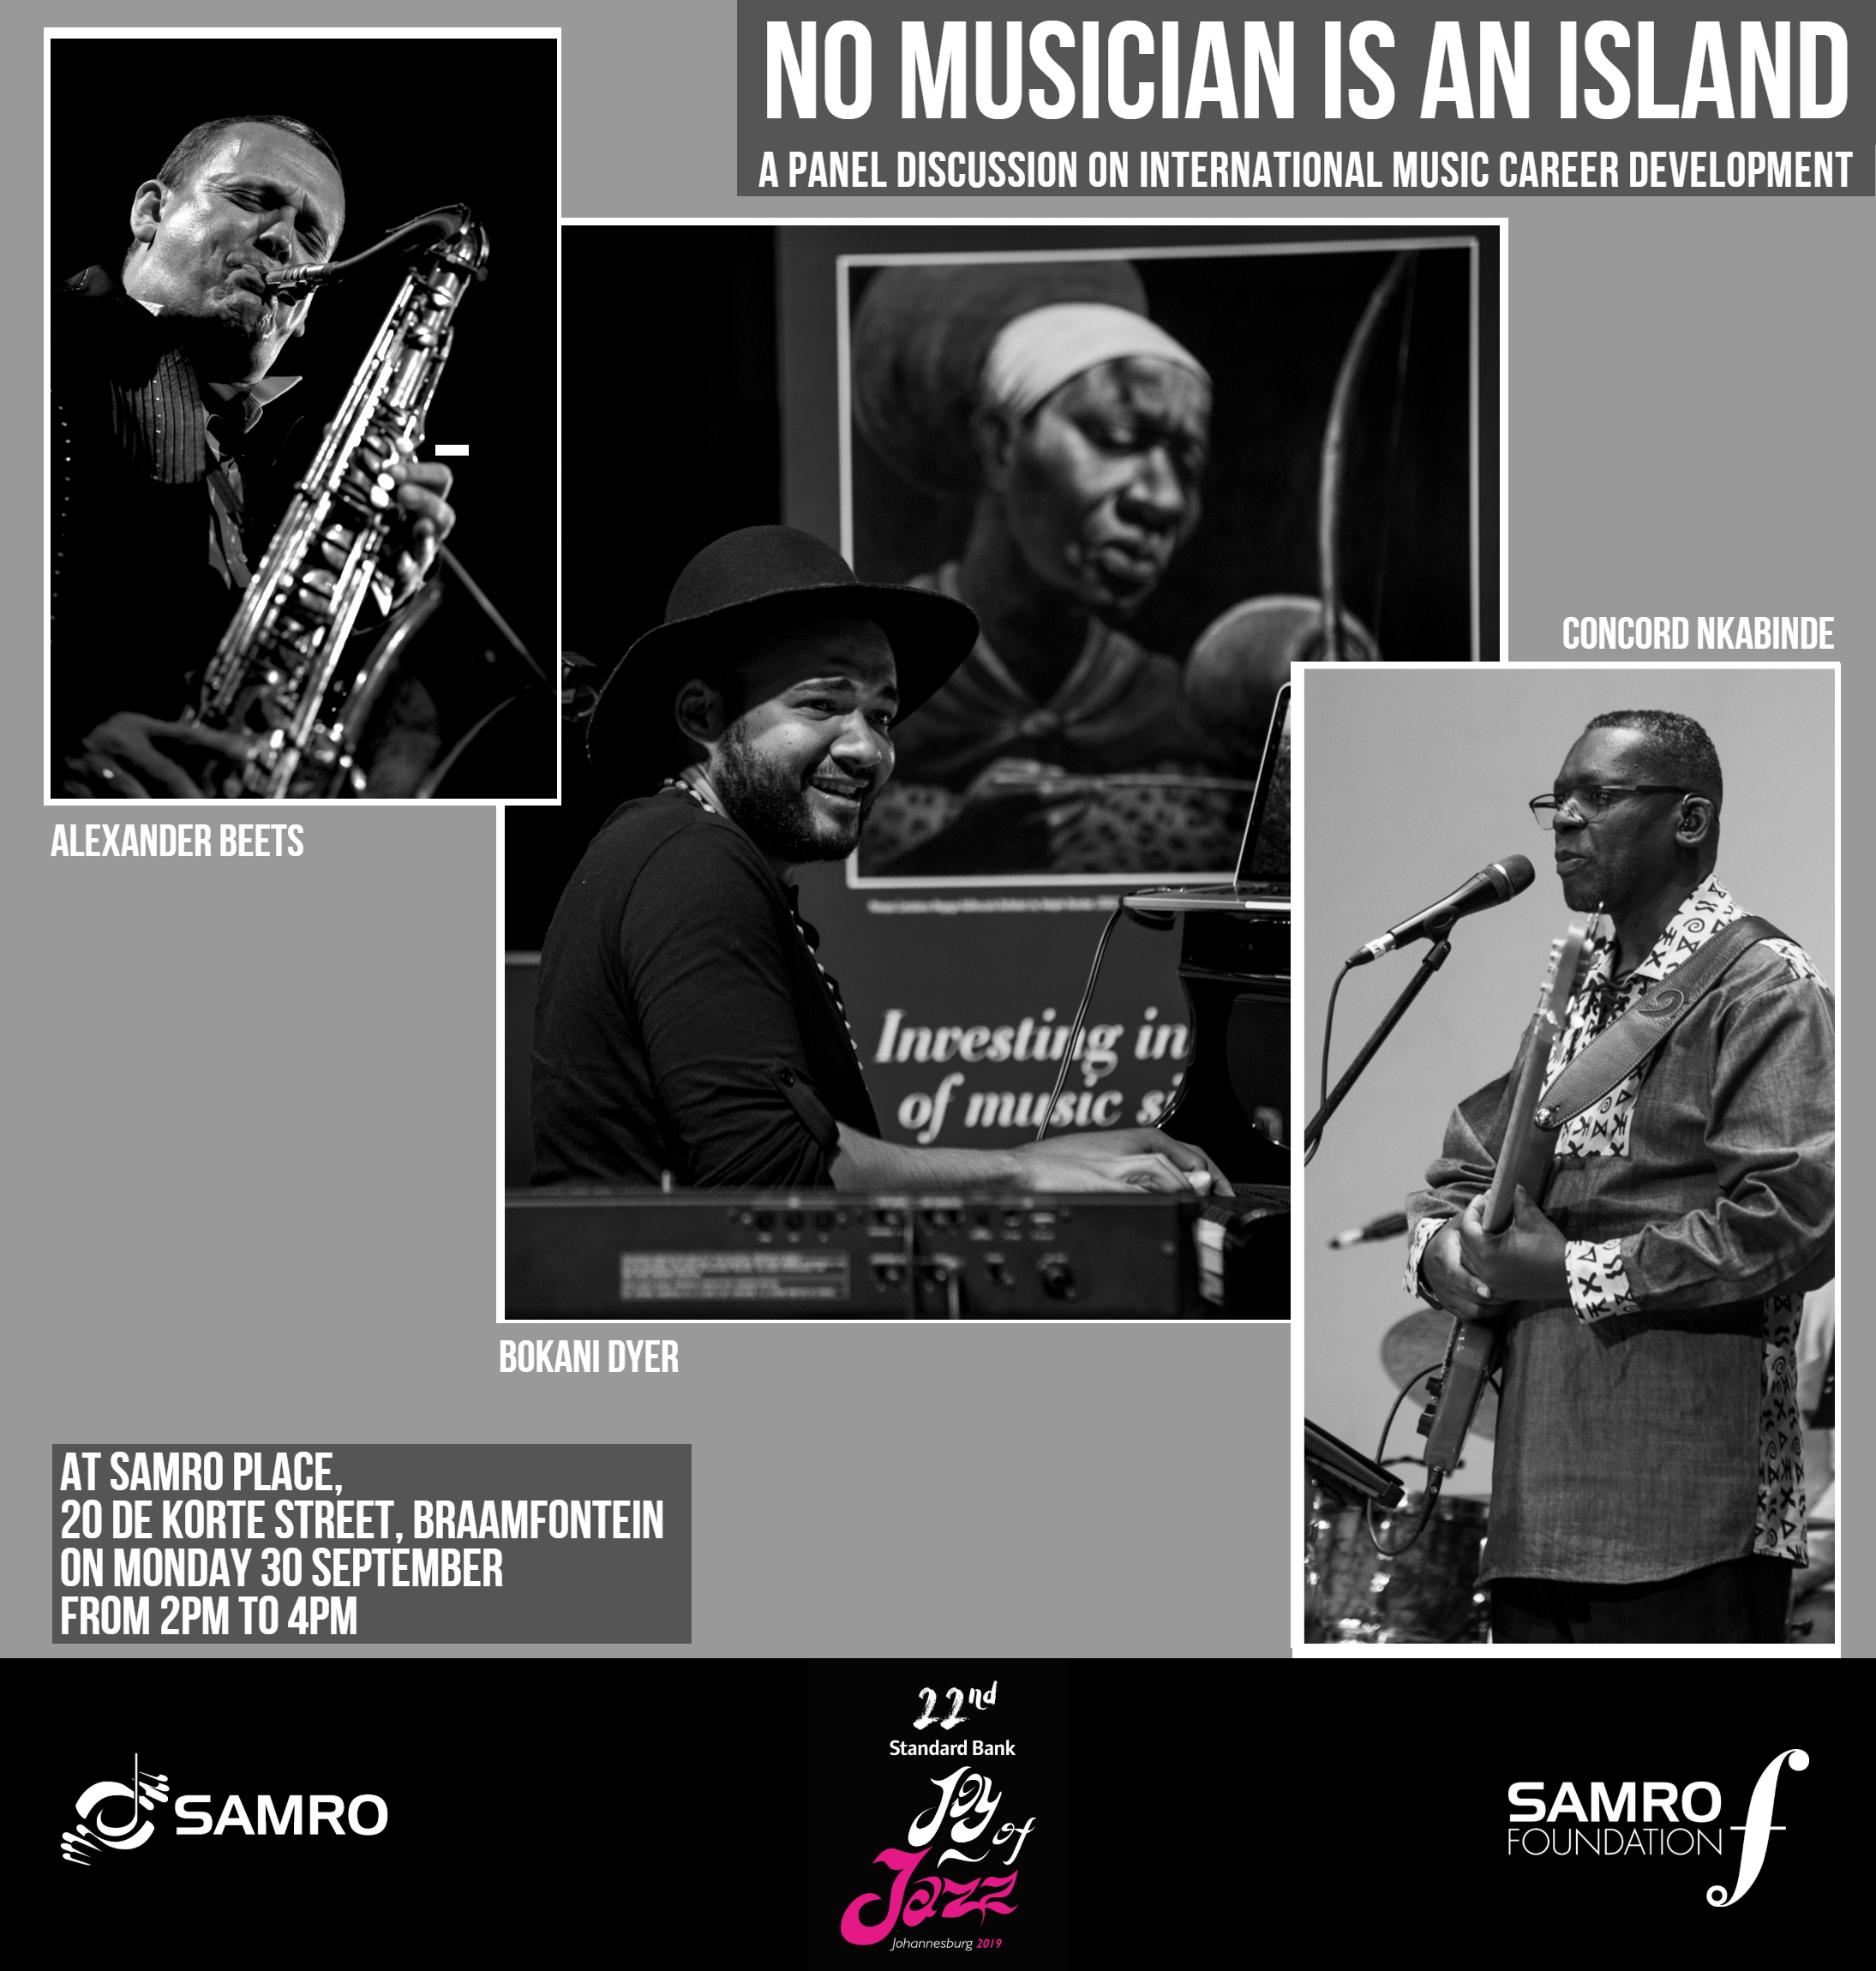 No Musician is an Island: A panel discussion featuring Alexander Beets, Bokani Dyer and Concord Nkabinde